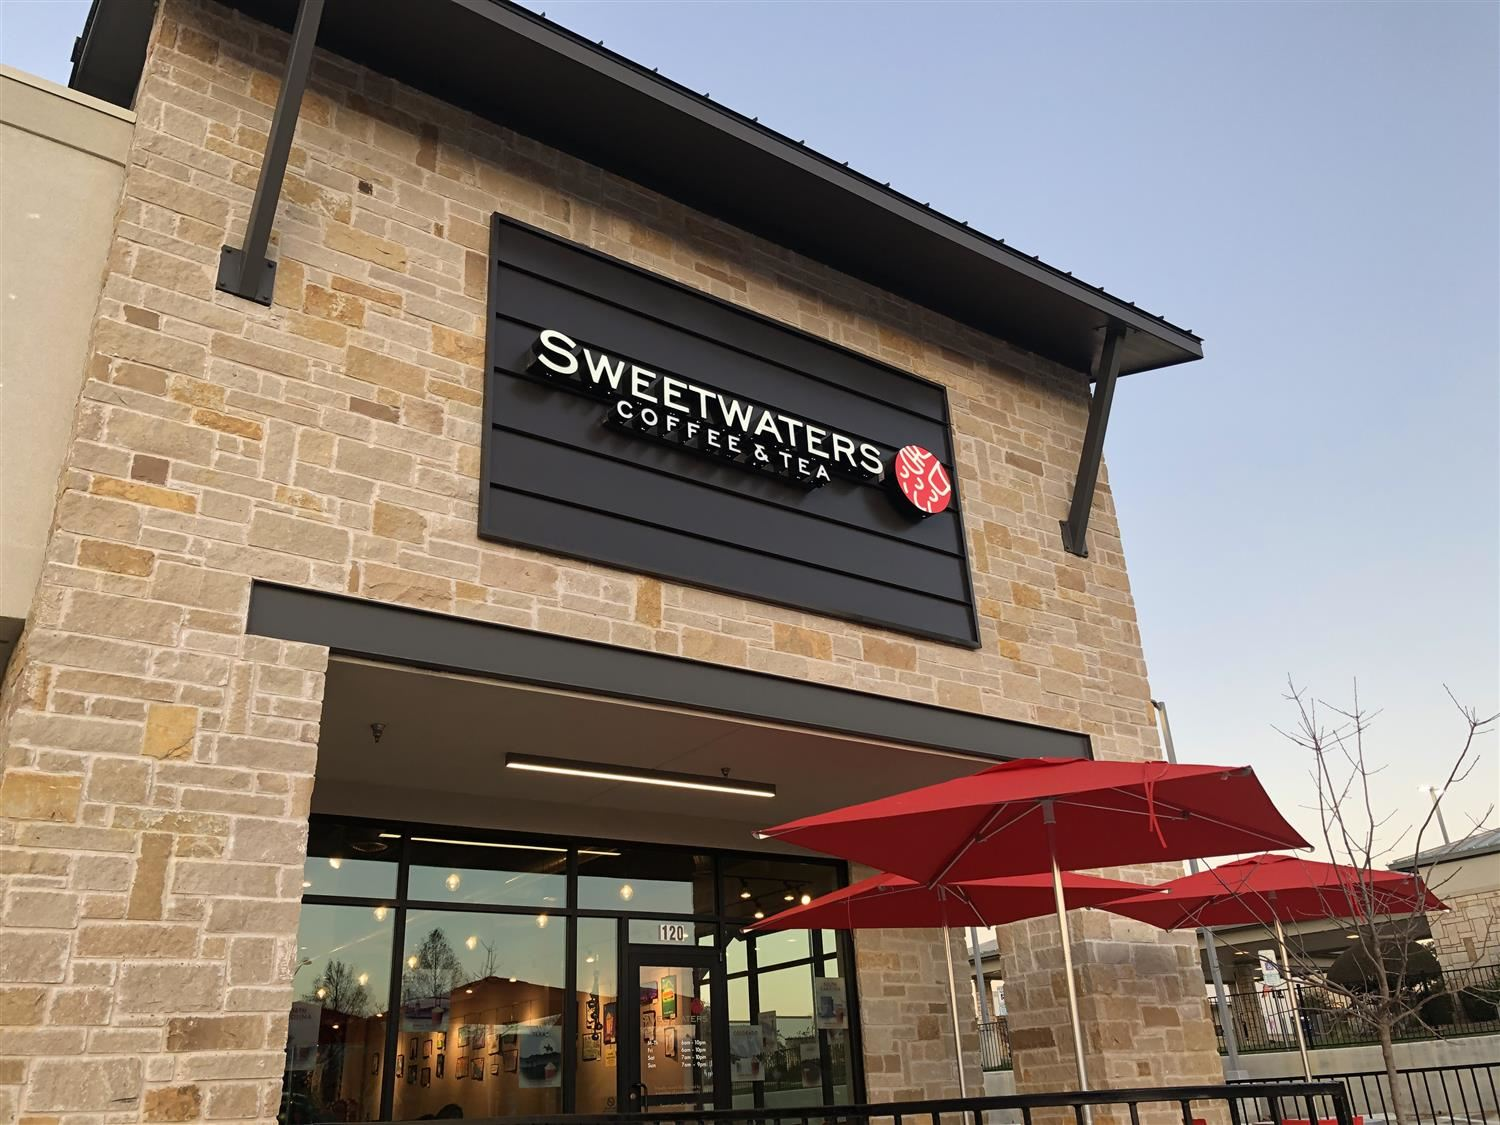 McMath adopts Sweetwaters Coffee shop on Teasley